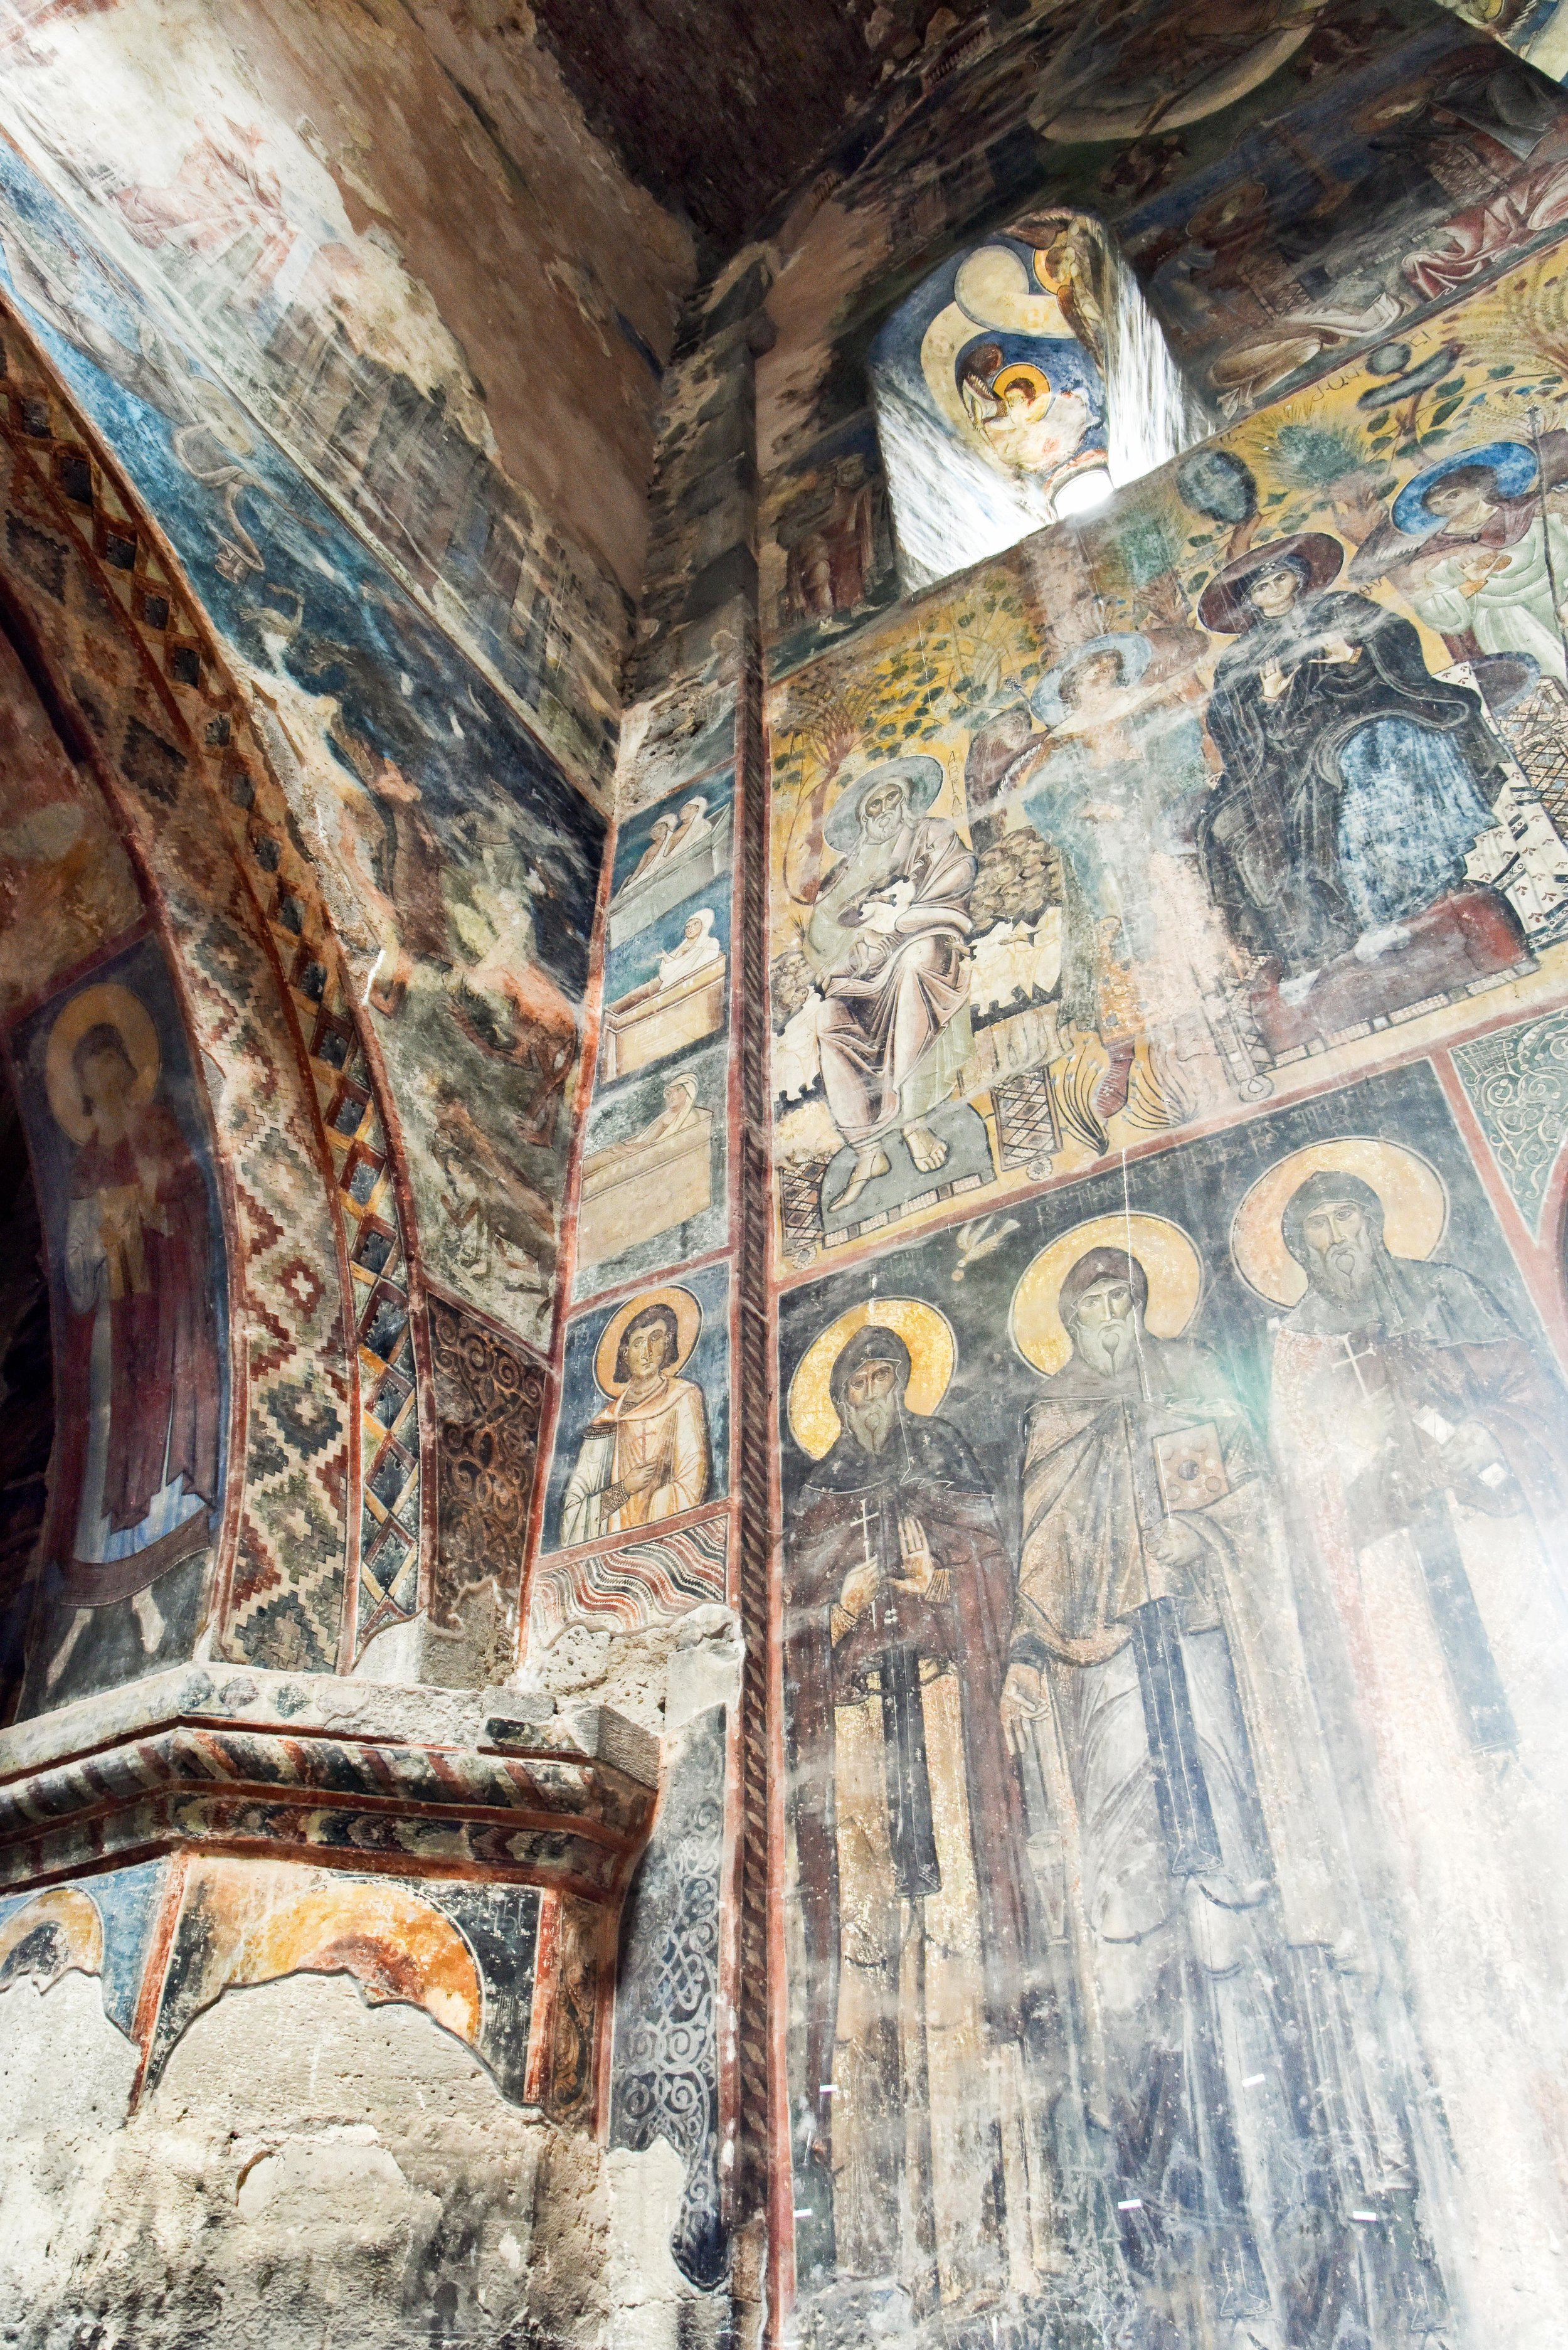 Detail of the frescoes, which await funds for restoration